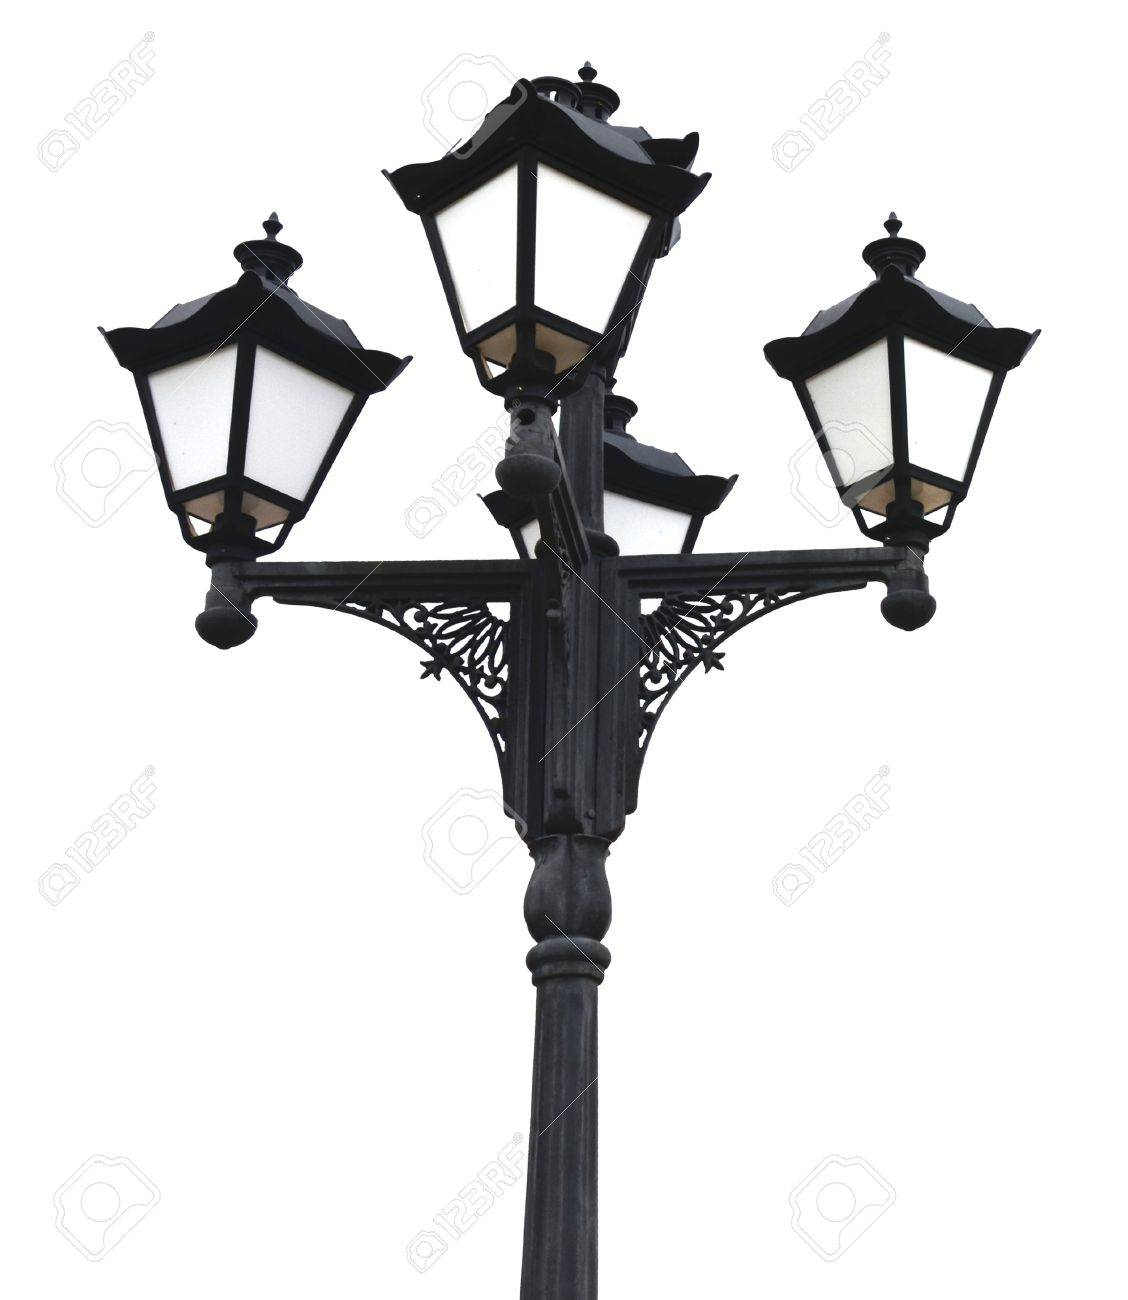 Quaternary Old-fashioned Street Lamp Post Stock Photo, Picture And ...